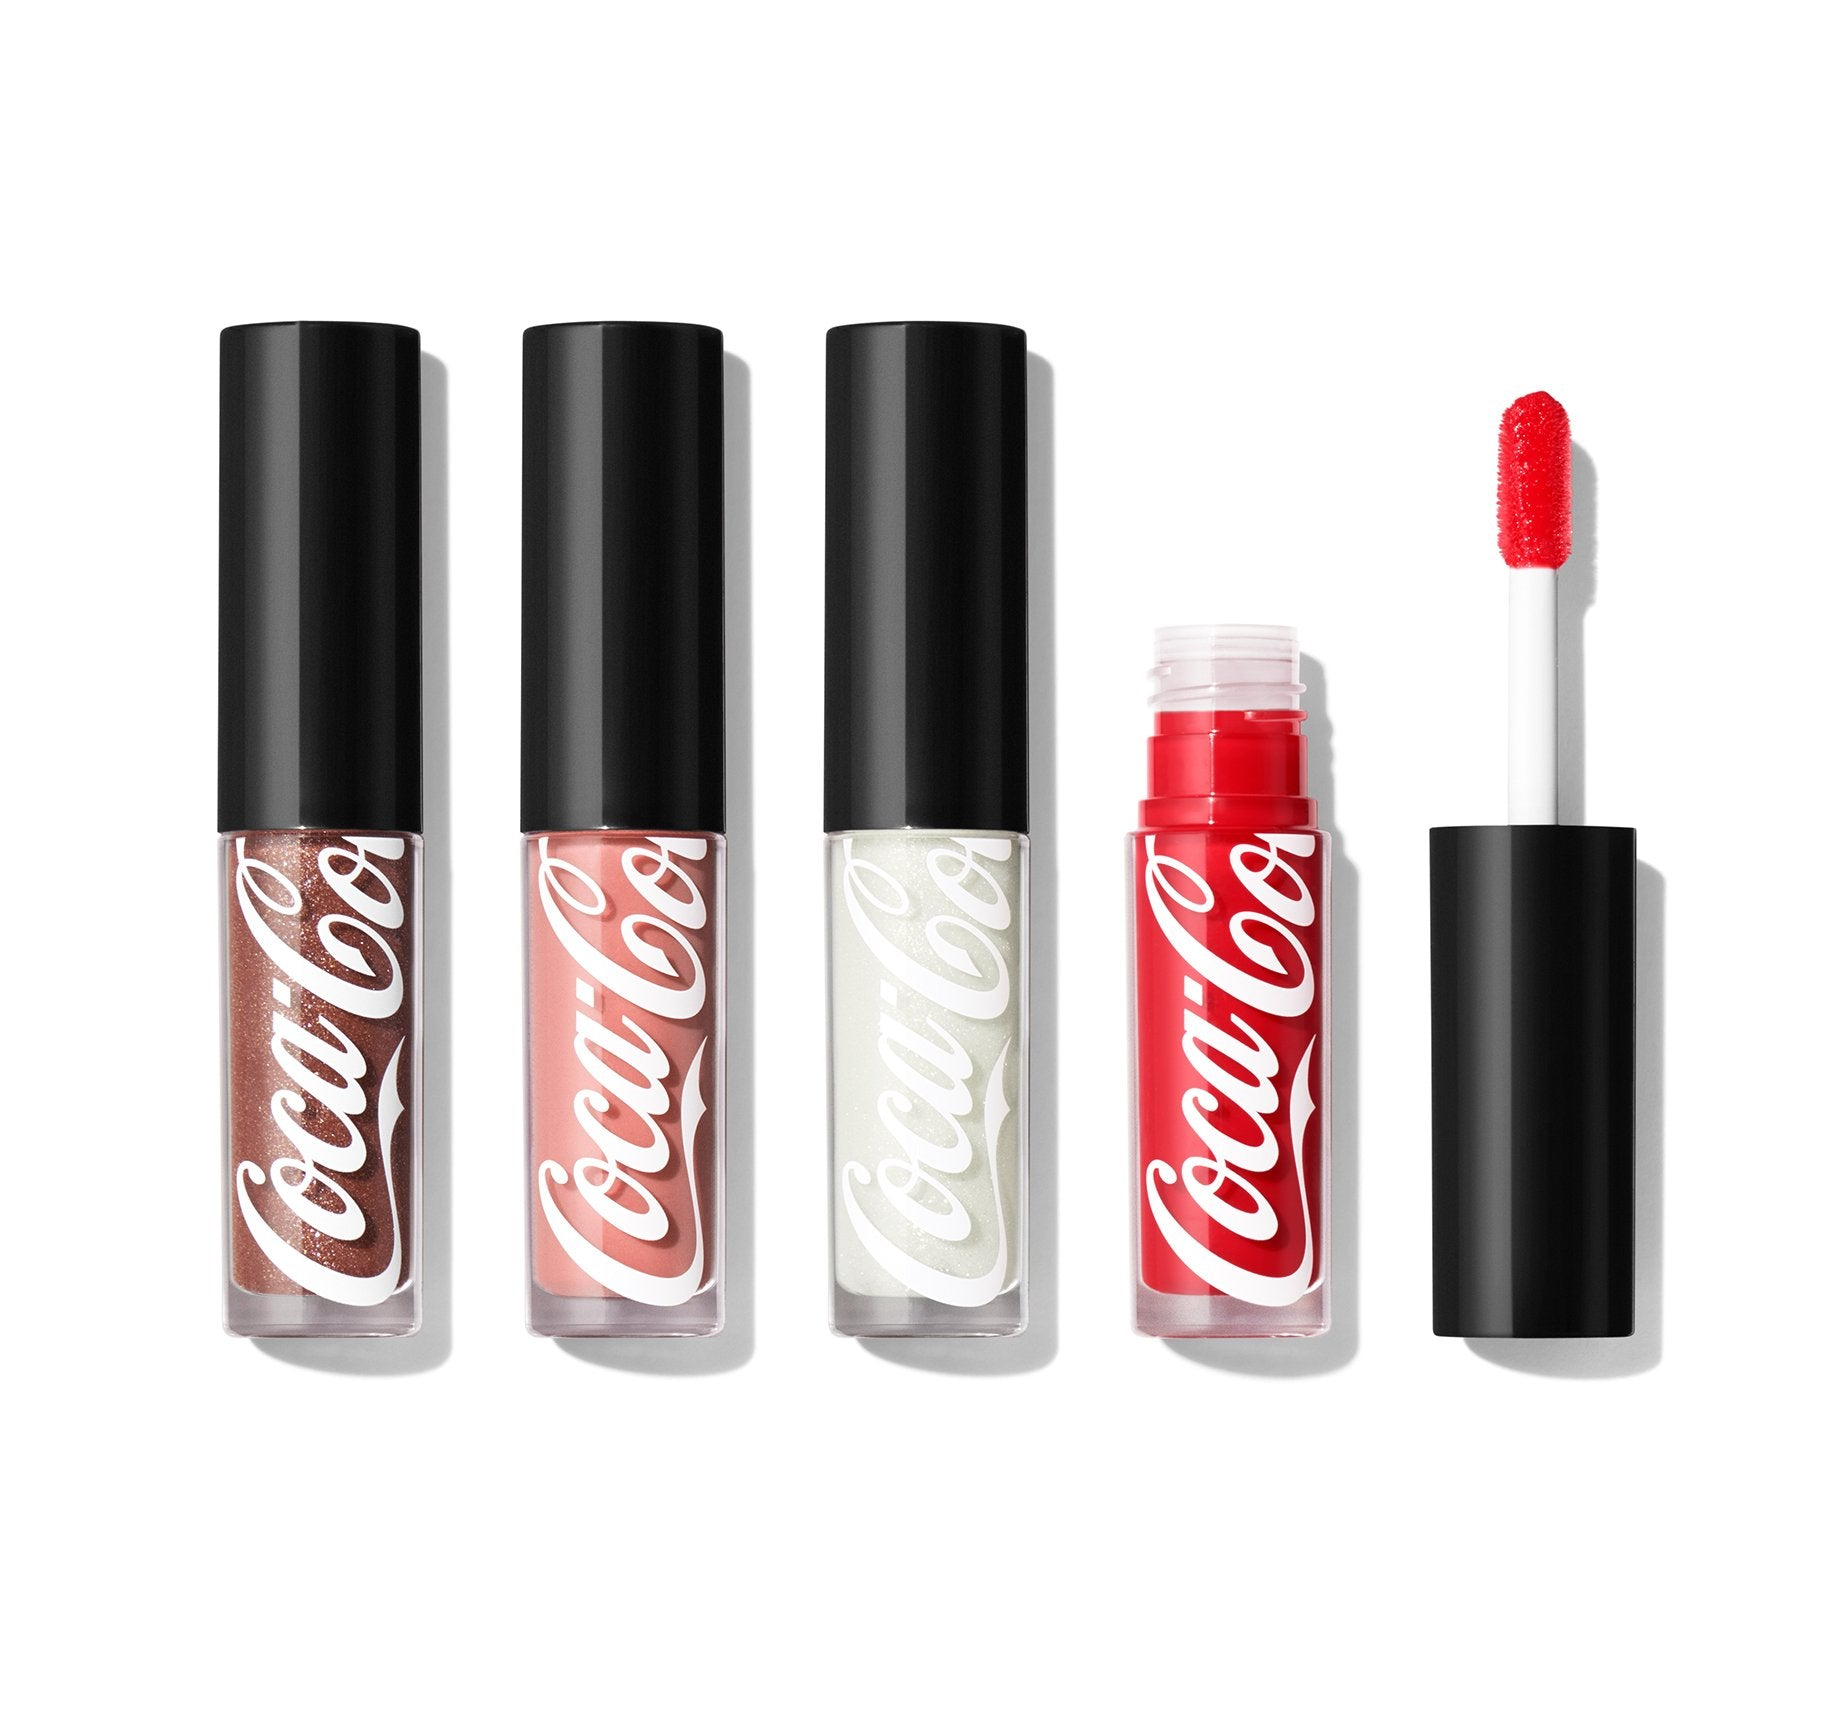 COCA-COLA X MORPHE LIP IN THE MOMENT LIPPENKOLLEKTION